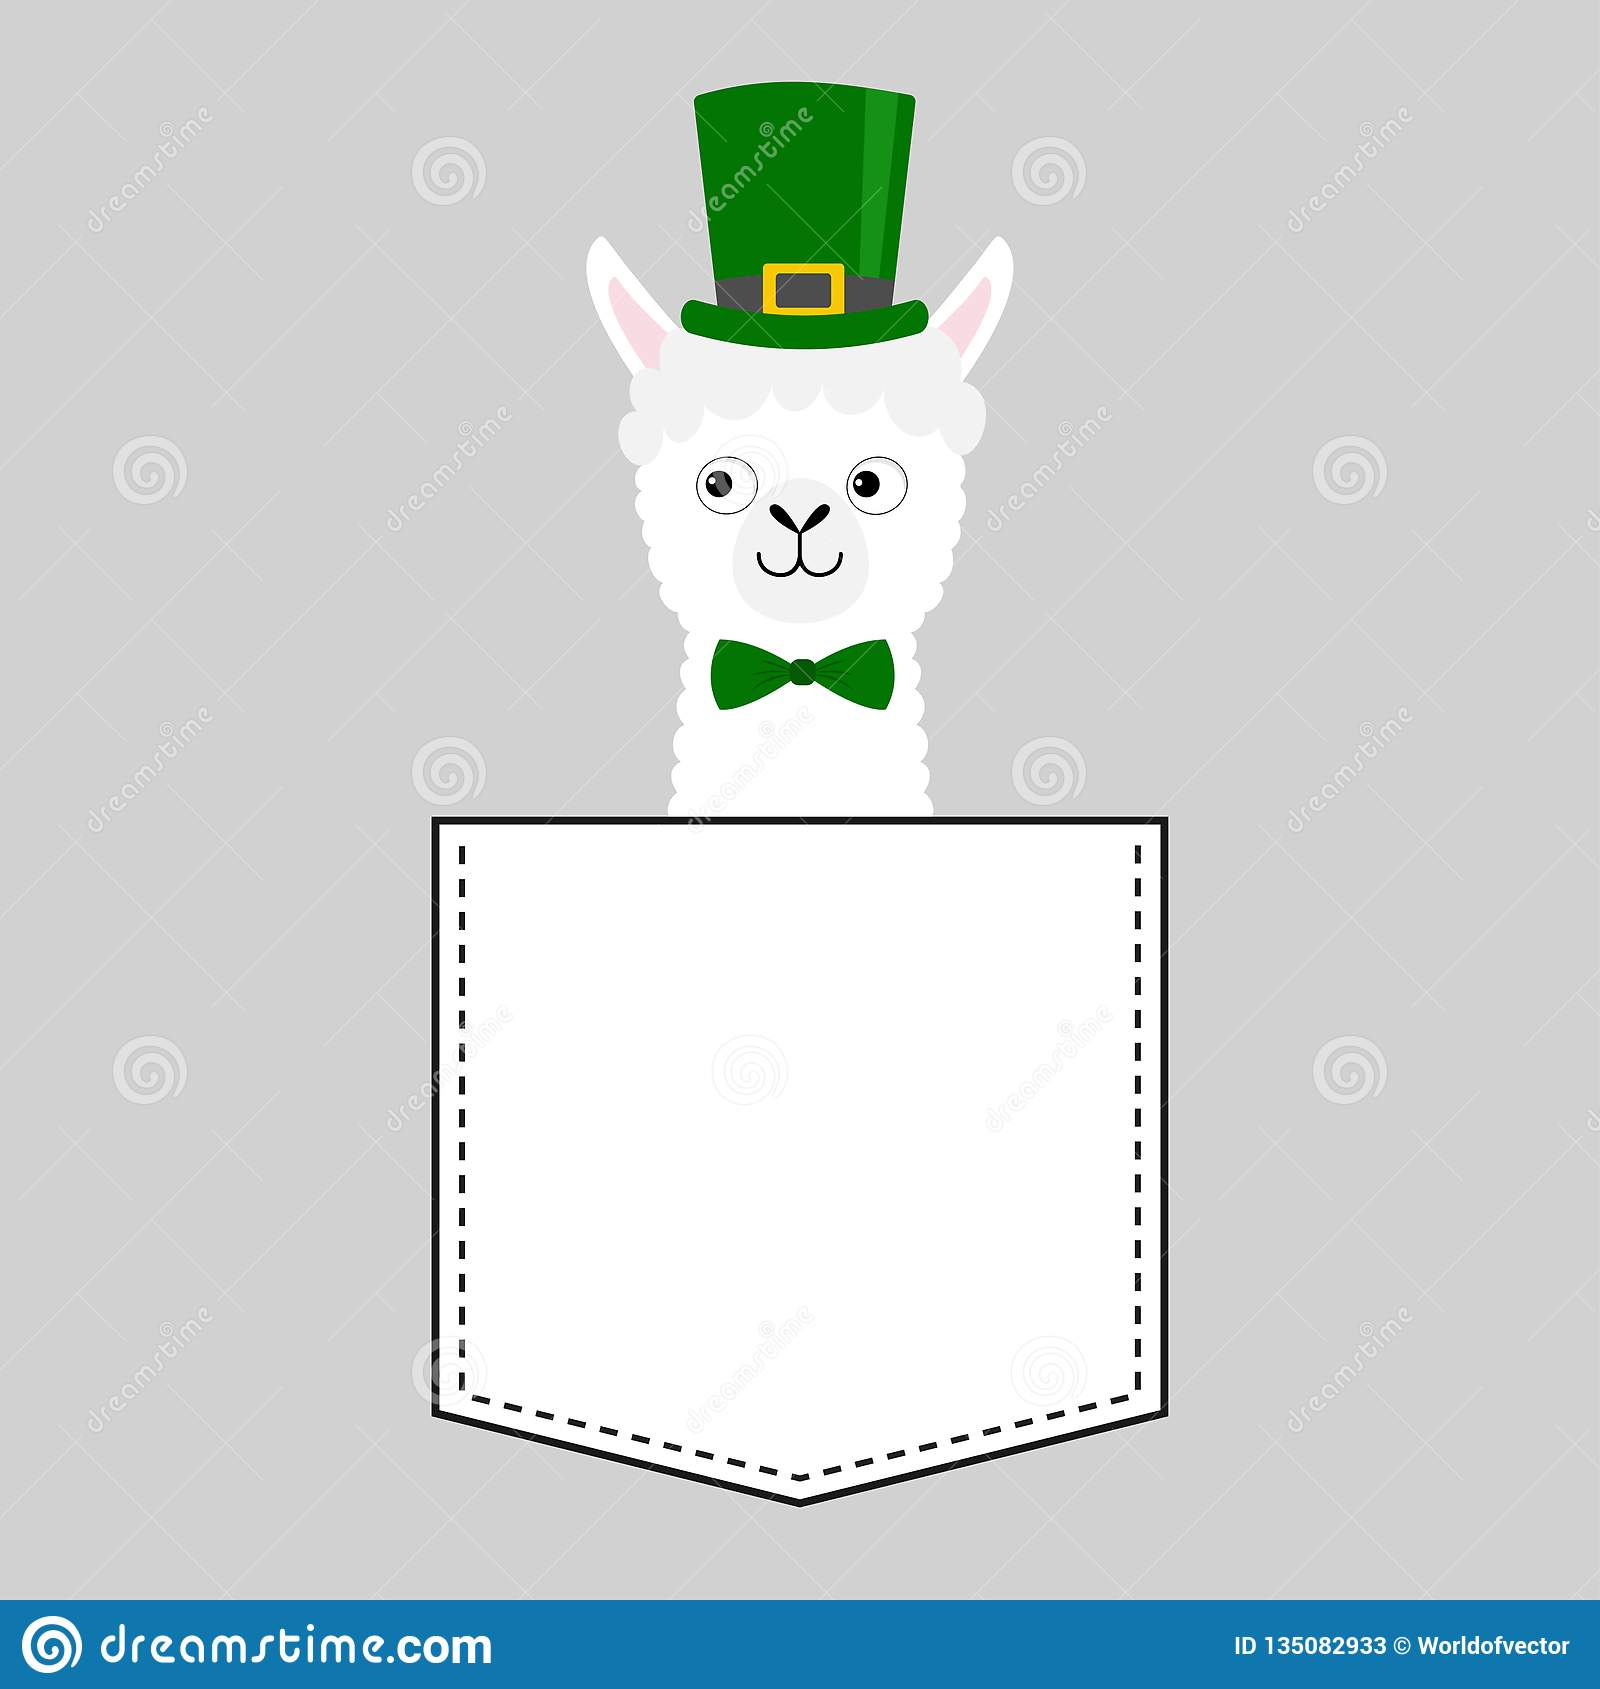 Llama alpaca face head in the pocket. Green hat Patrick day. Cute cartoon animals. Kawaii character. Dash line. White and black